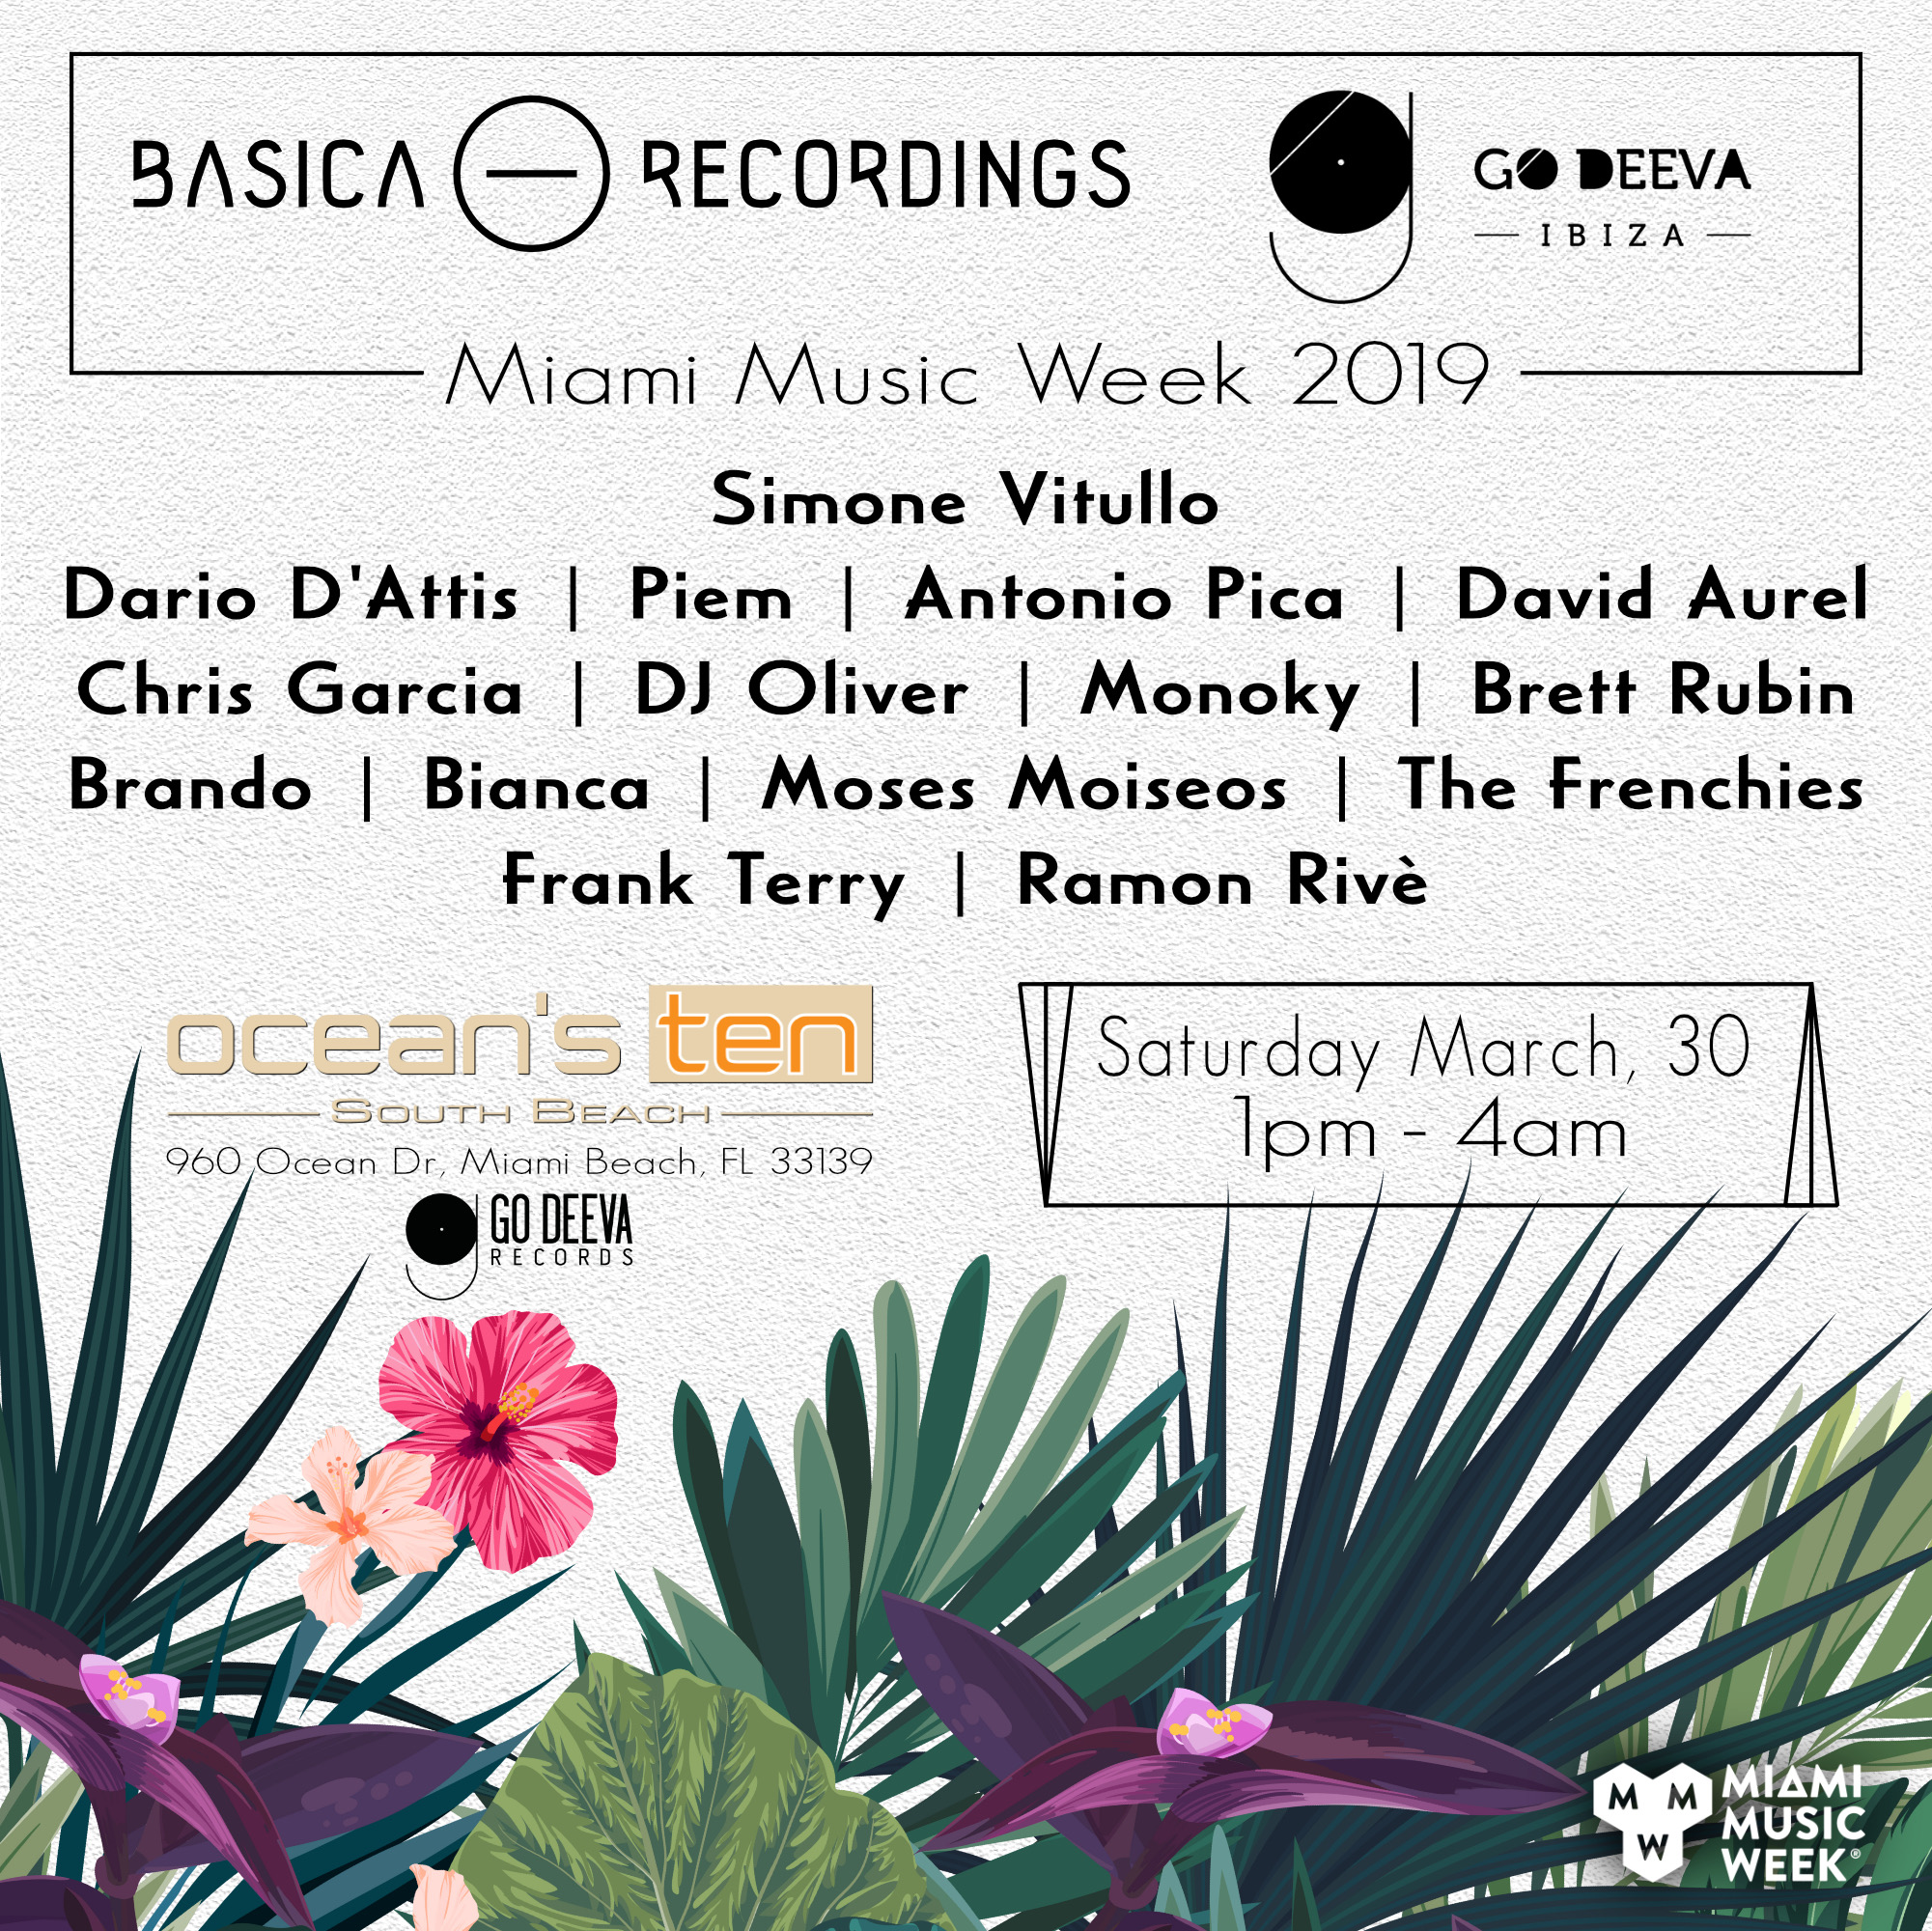 Basica and Go Deeva Ibiza Official Party Image